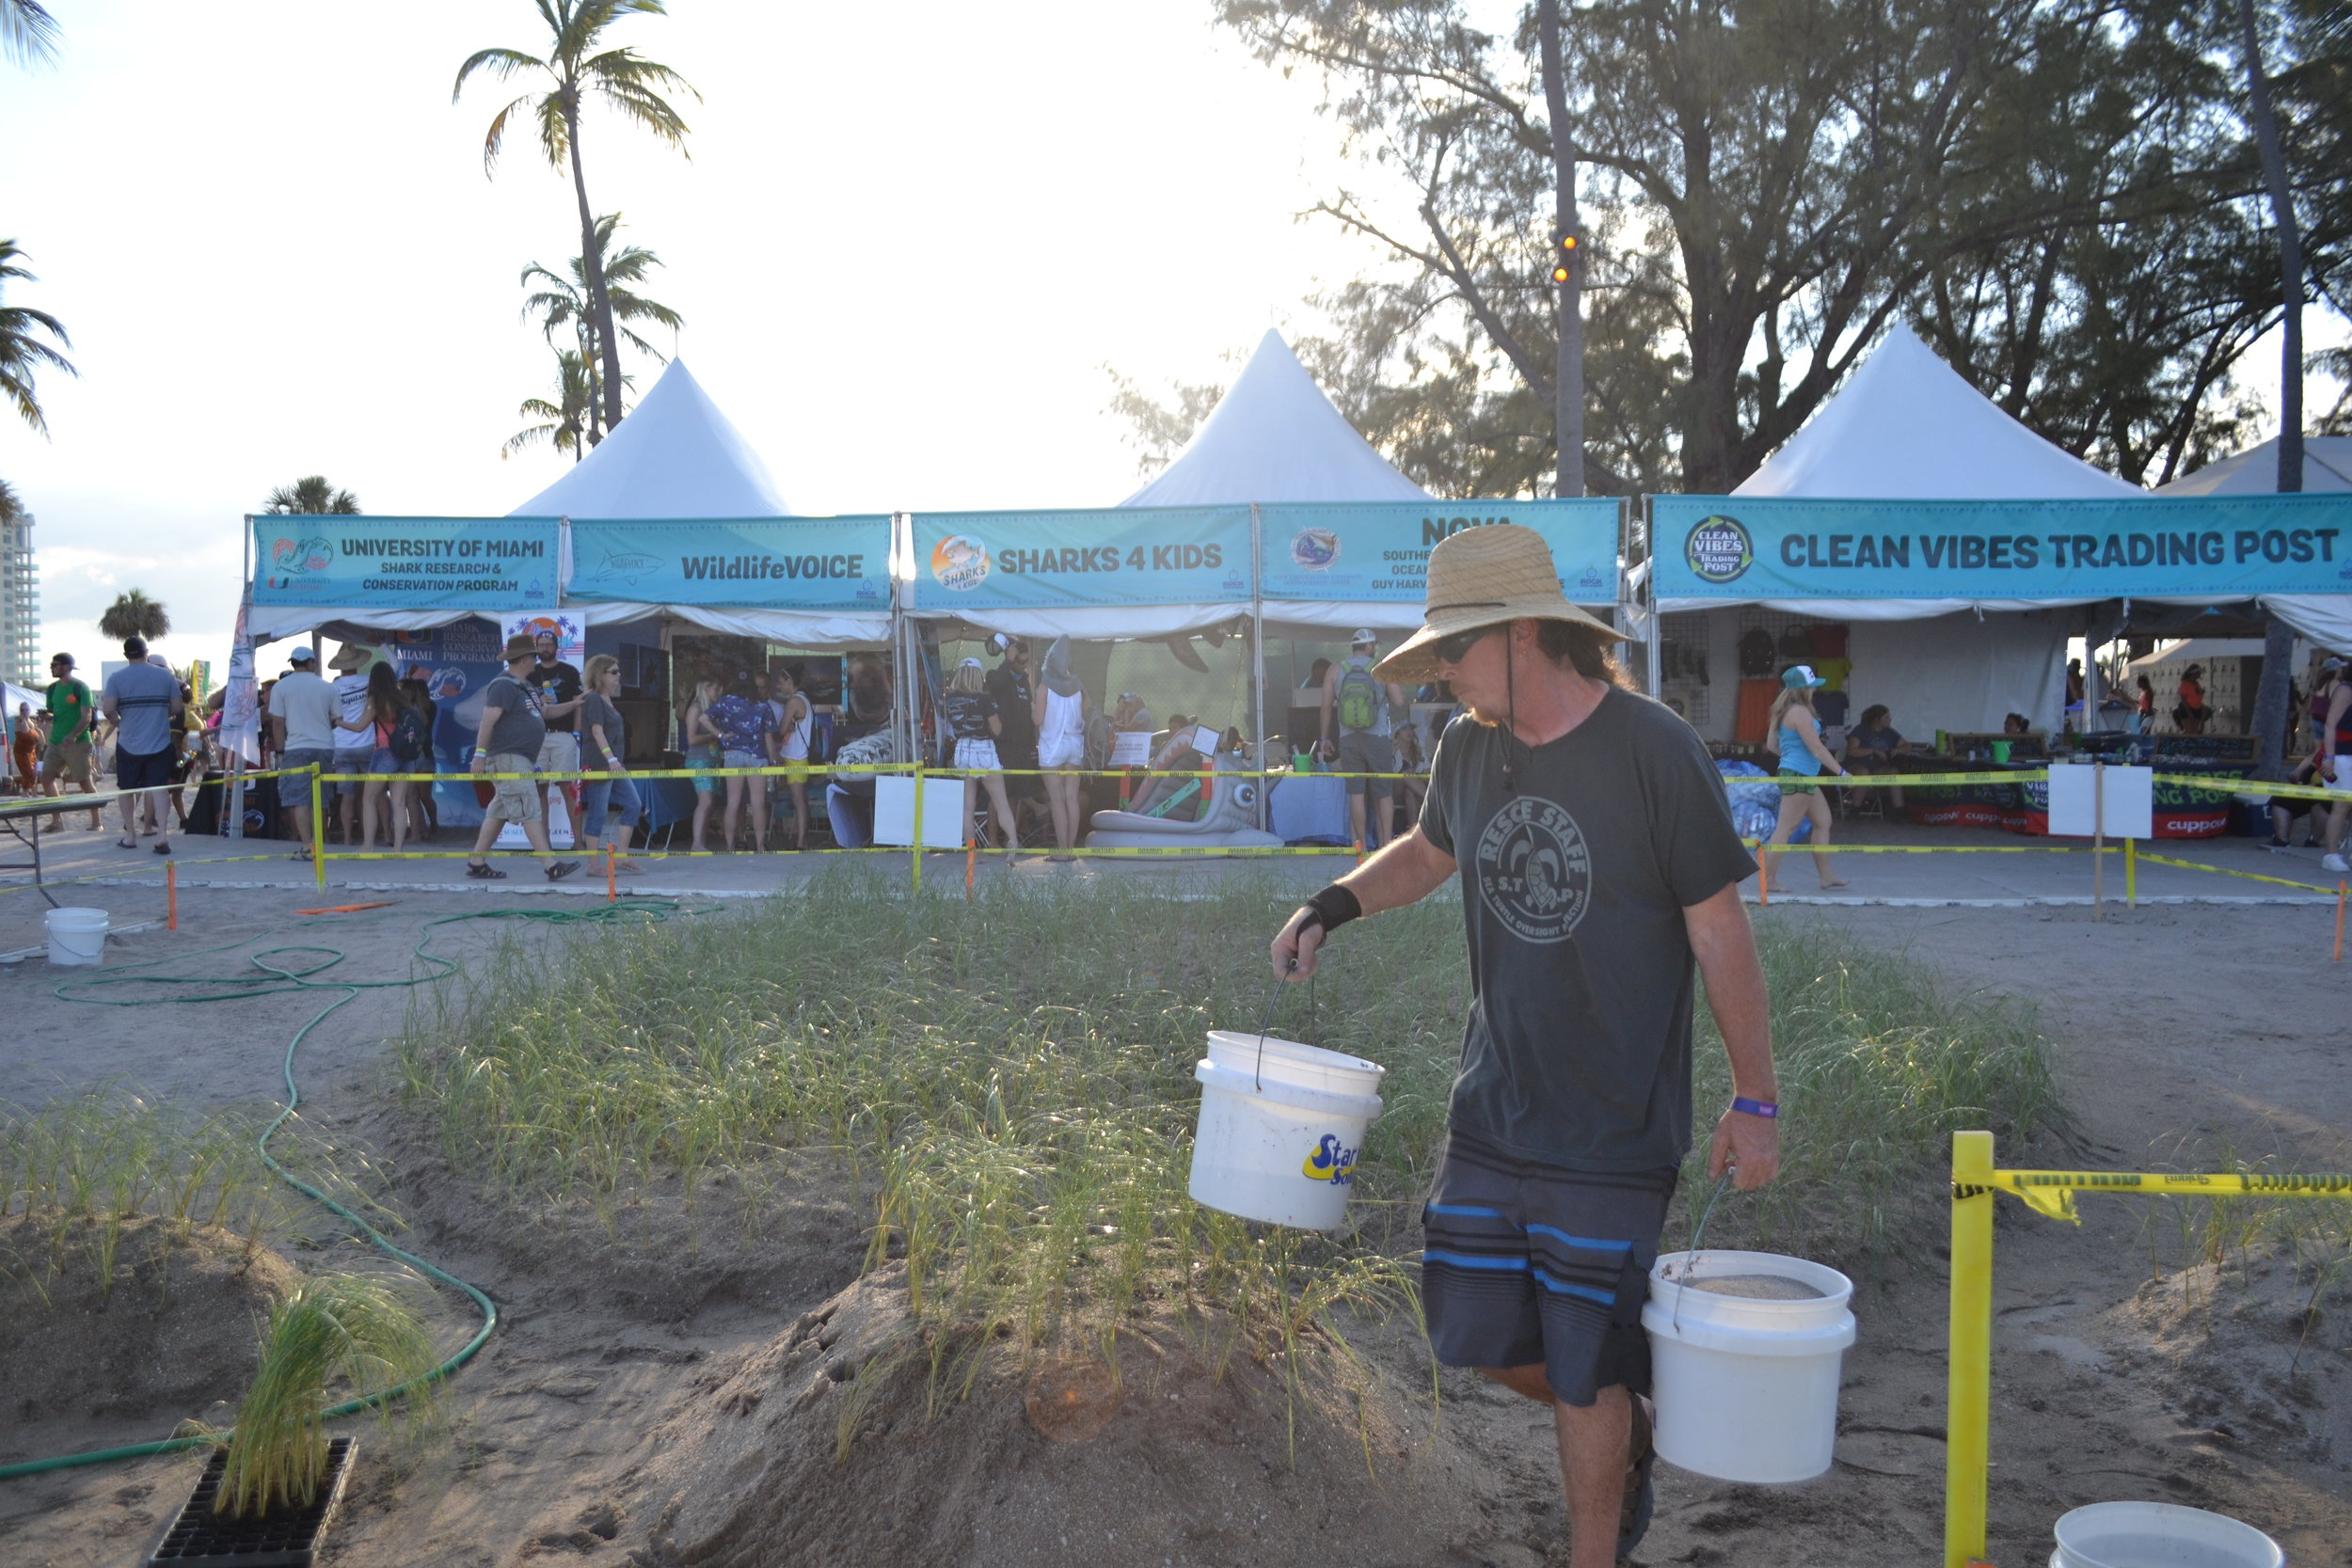 Richard WhiteCloud tended to hundreds of sea oat plugs that concert goers helped to plant during TortugaFest 2017. The plants that cover the sea turtle-shaped sand dune Richard sculpted will provide sea turtle habitat and help to prevent beach erosion.